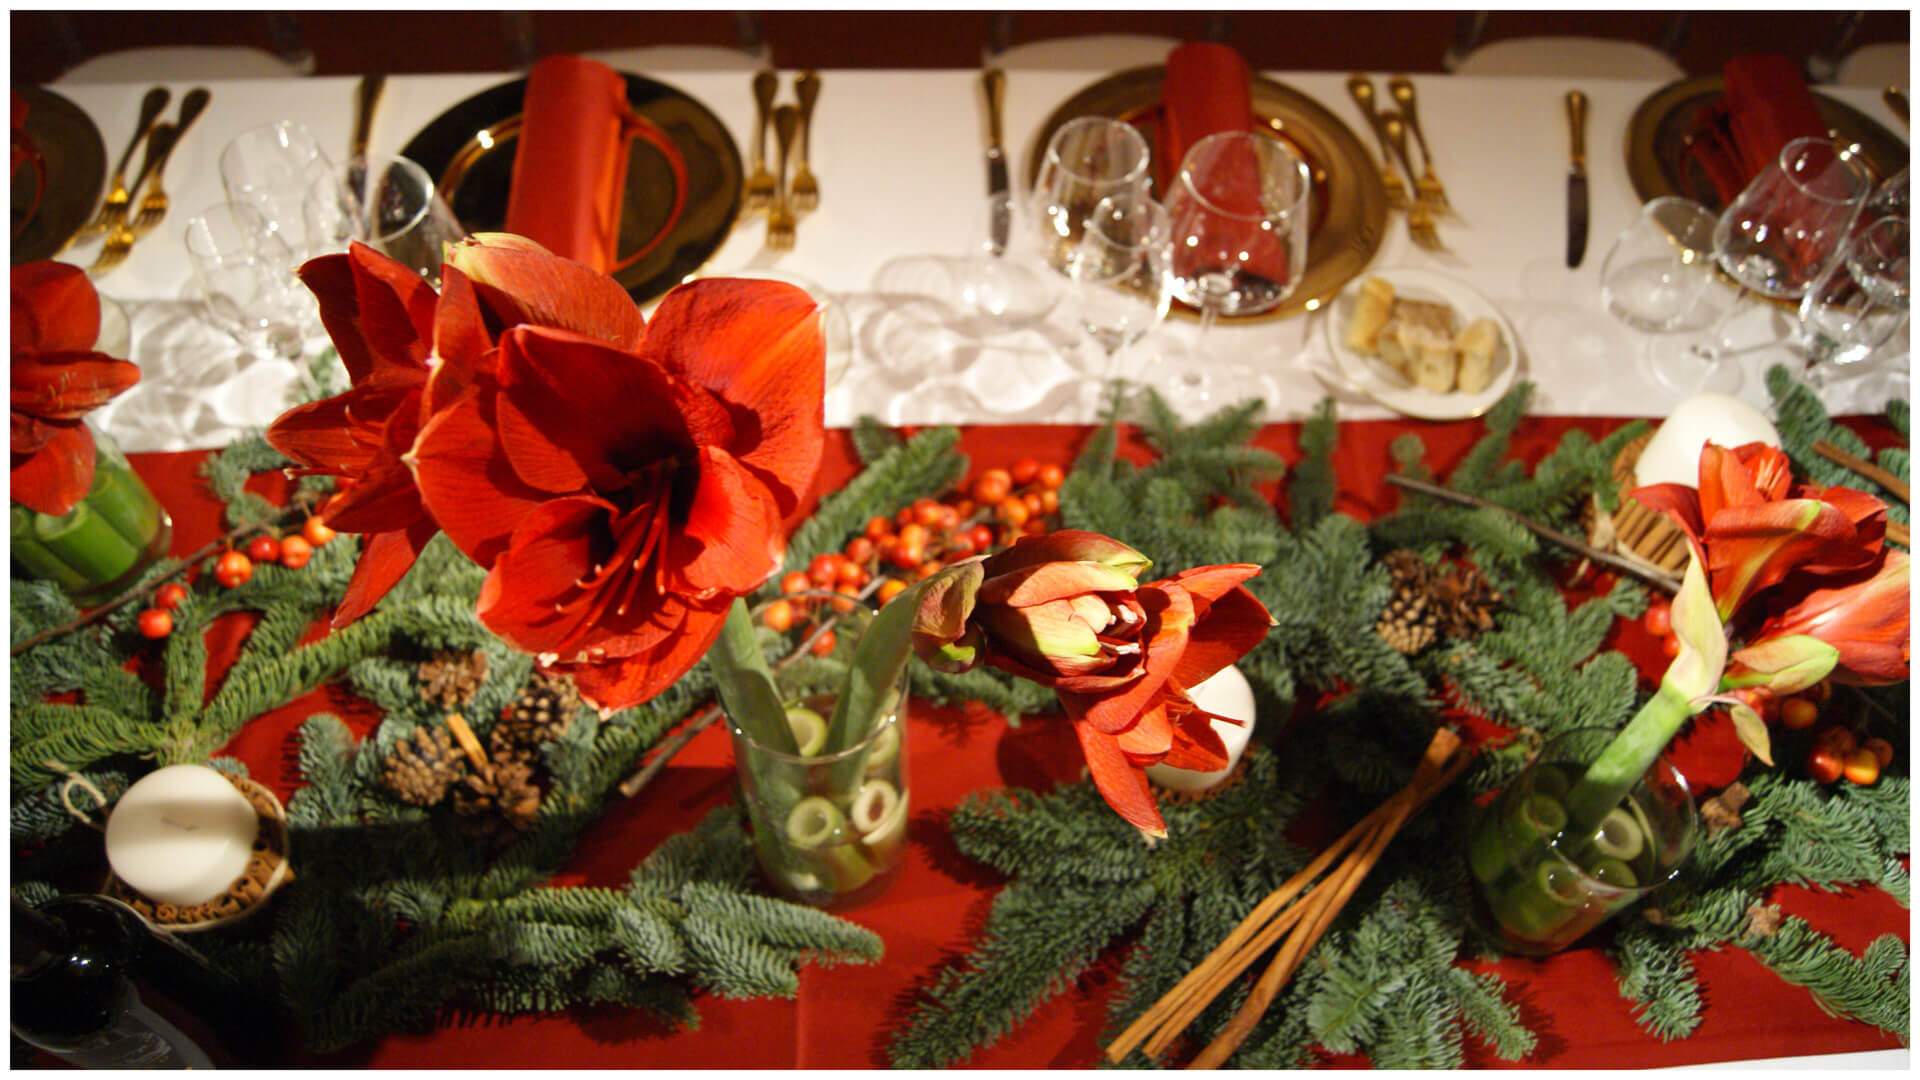 fiorile_firenze_christmas_event_1